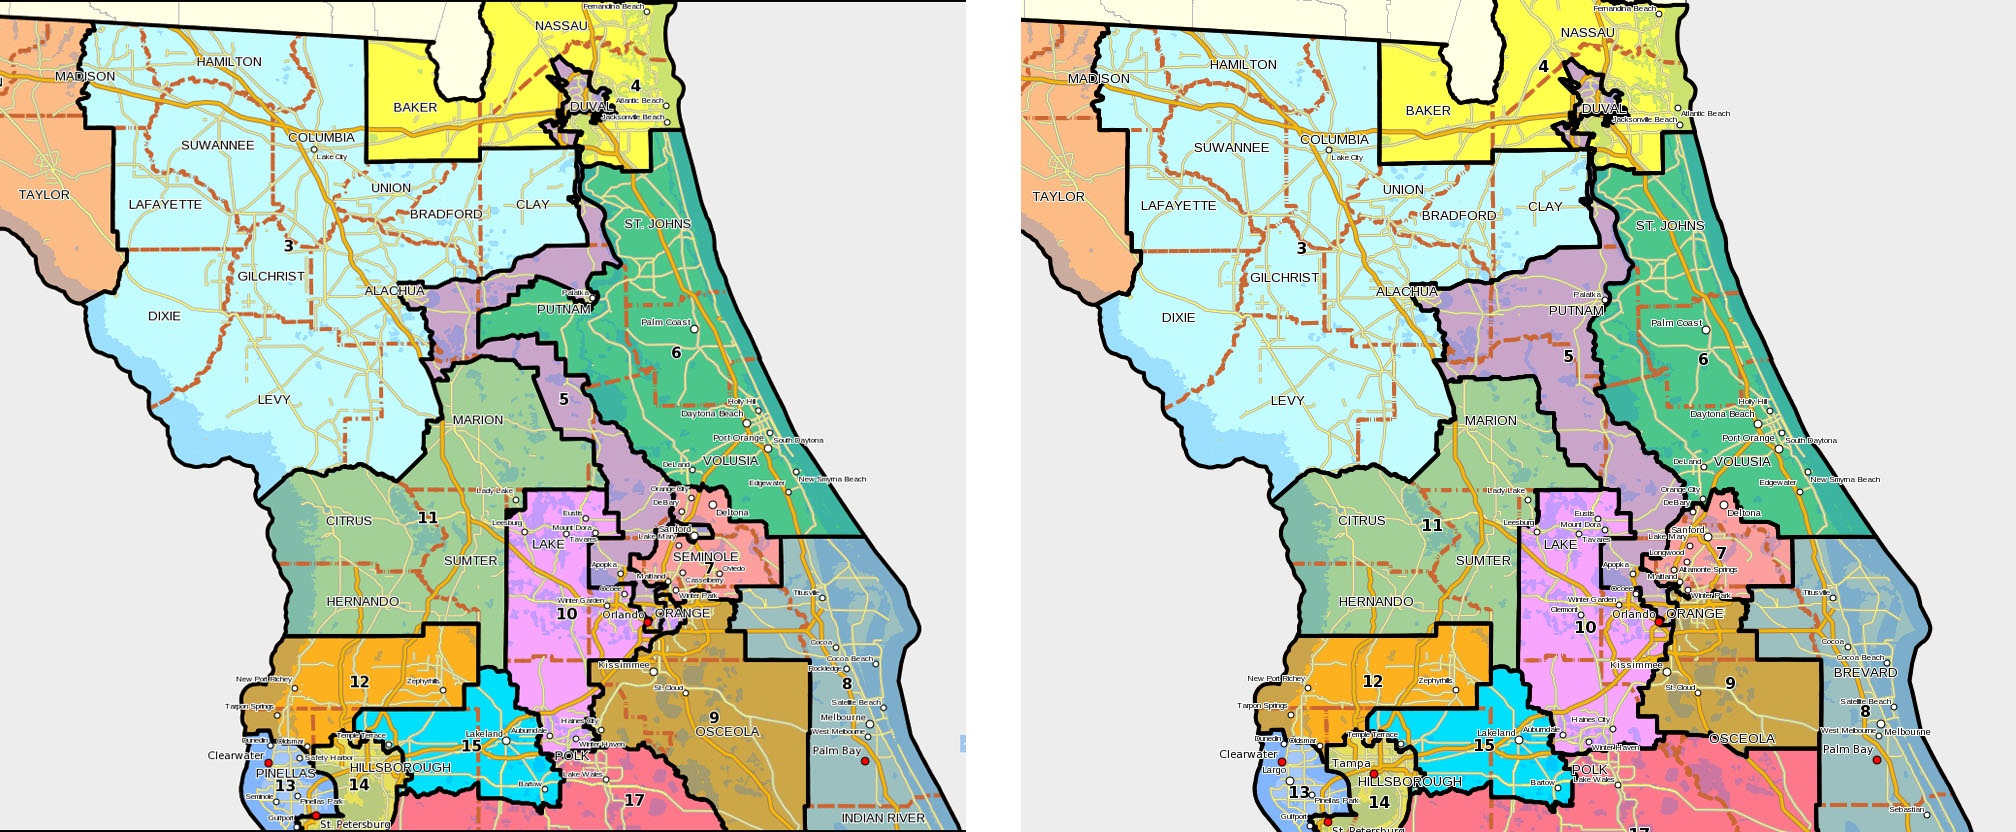 Naked Politics Redistricting Miami Herald  MiamiHeraldcom - Florida map districts